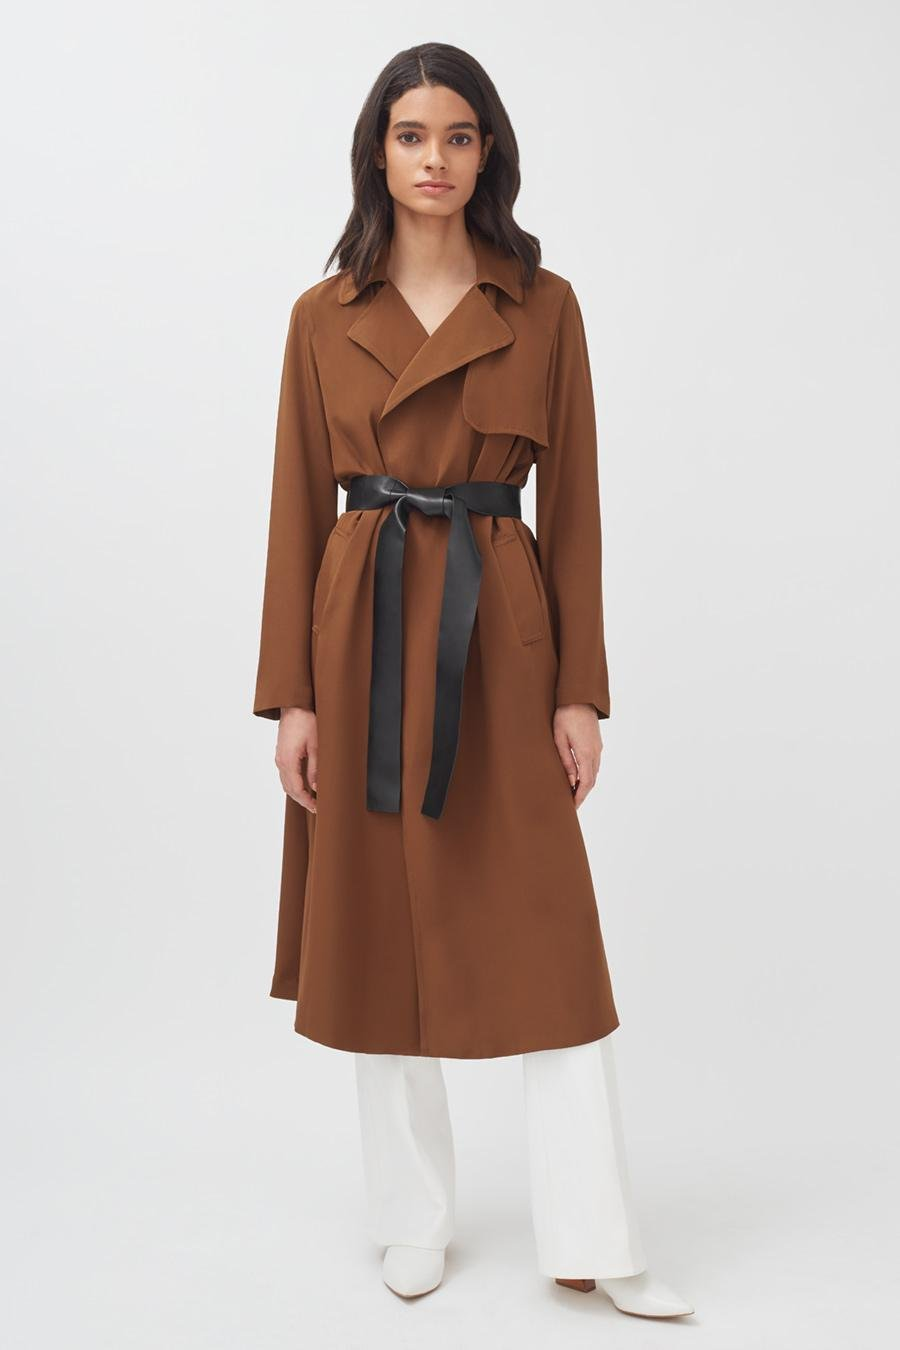 Women's Silk Classic Trench in Chestnut   Size: 1